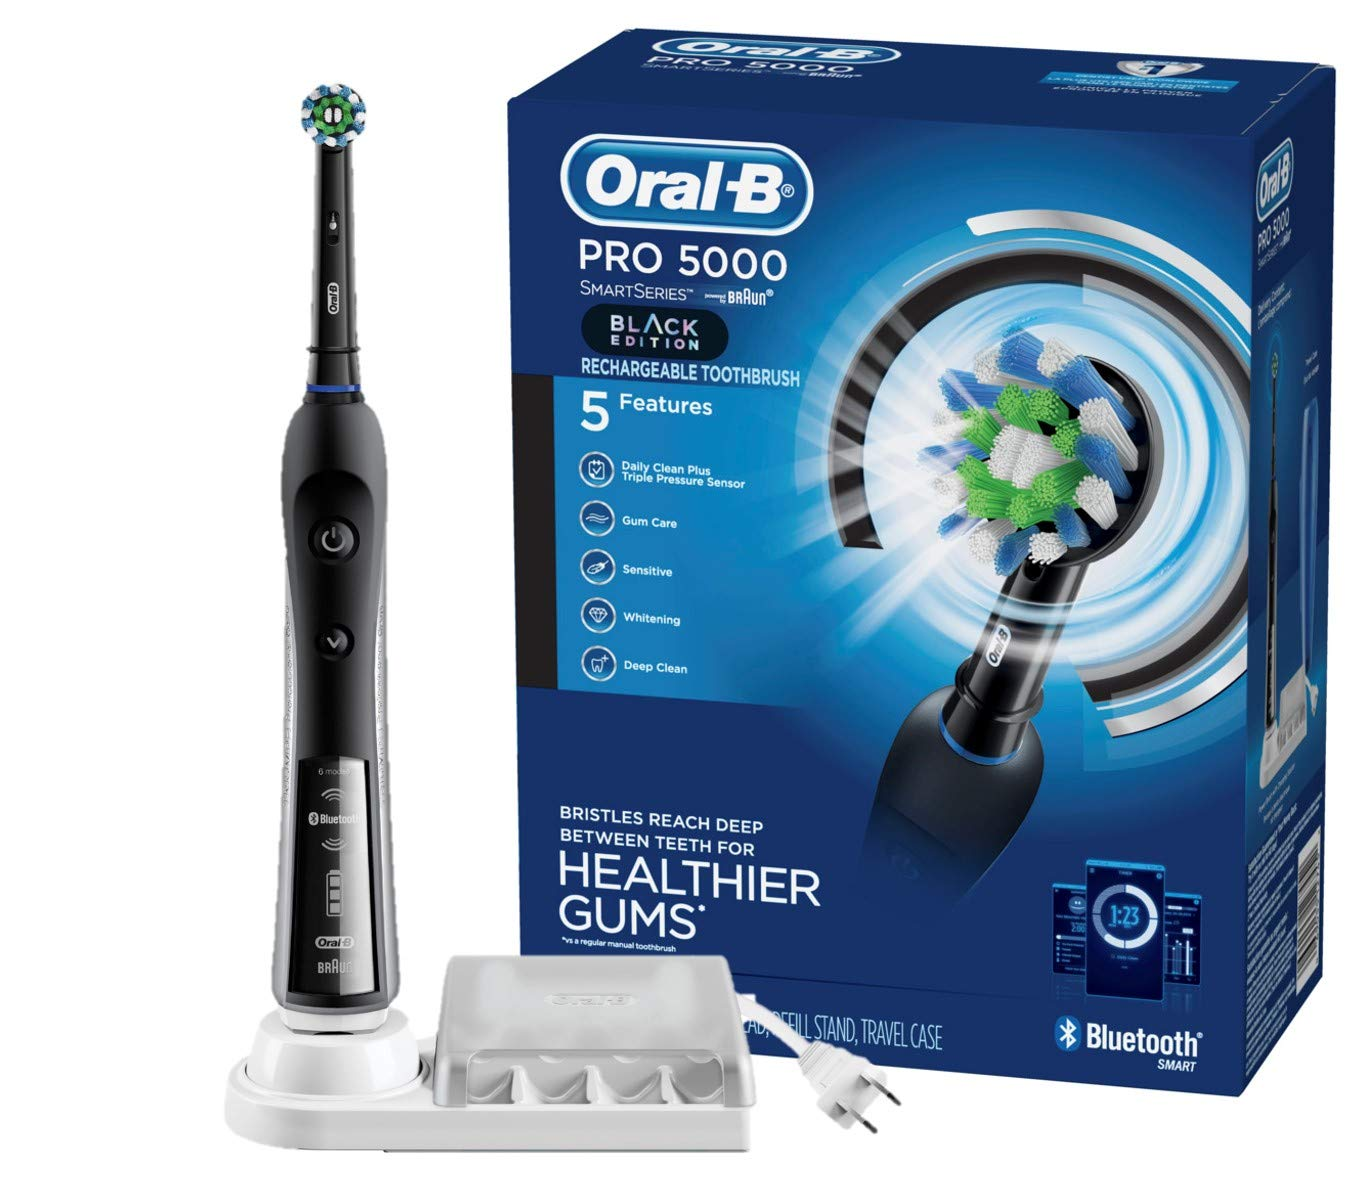 Oral-B Pro 5000 Smartseries Electric Toothbrush With Bluetooth Connectivity, Black Edition (Powered By Braun) by Oral-B